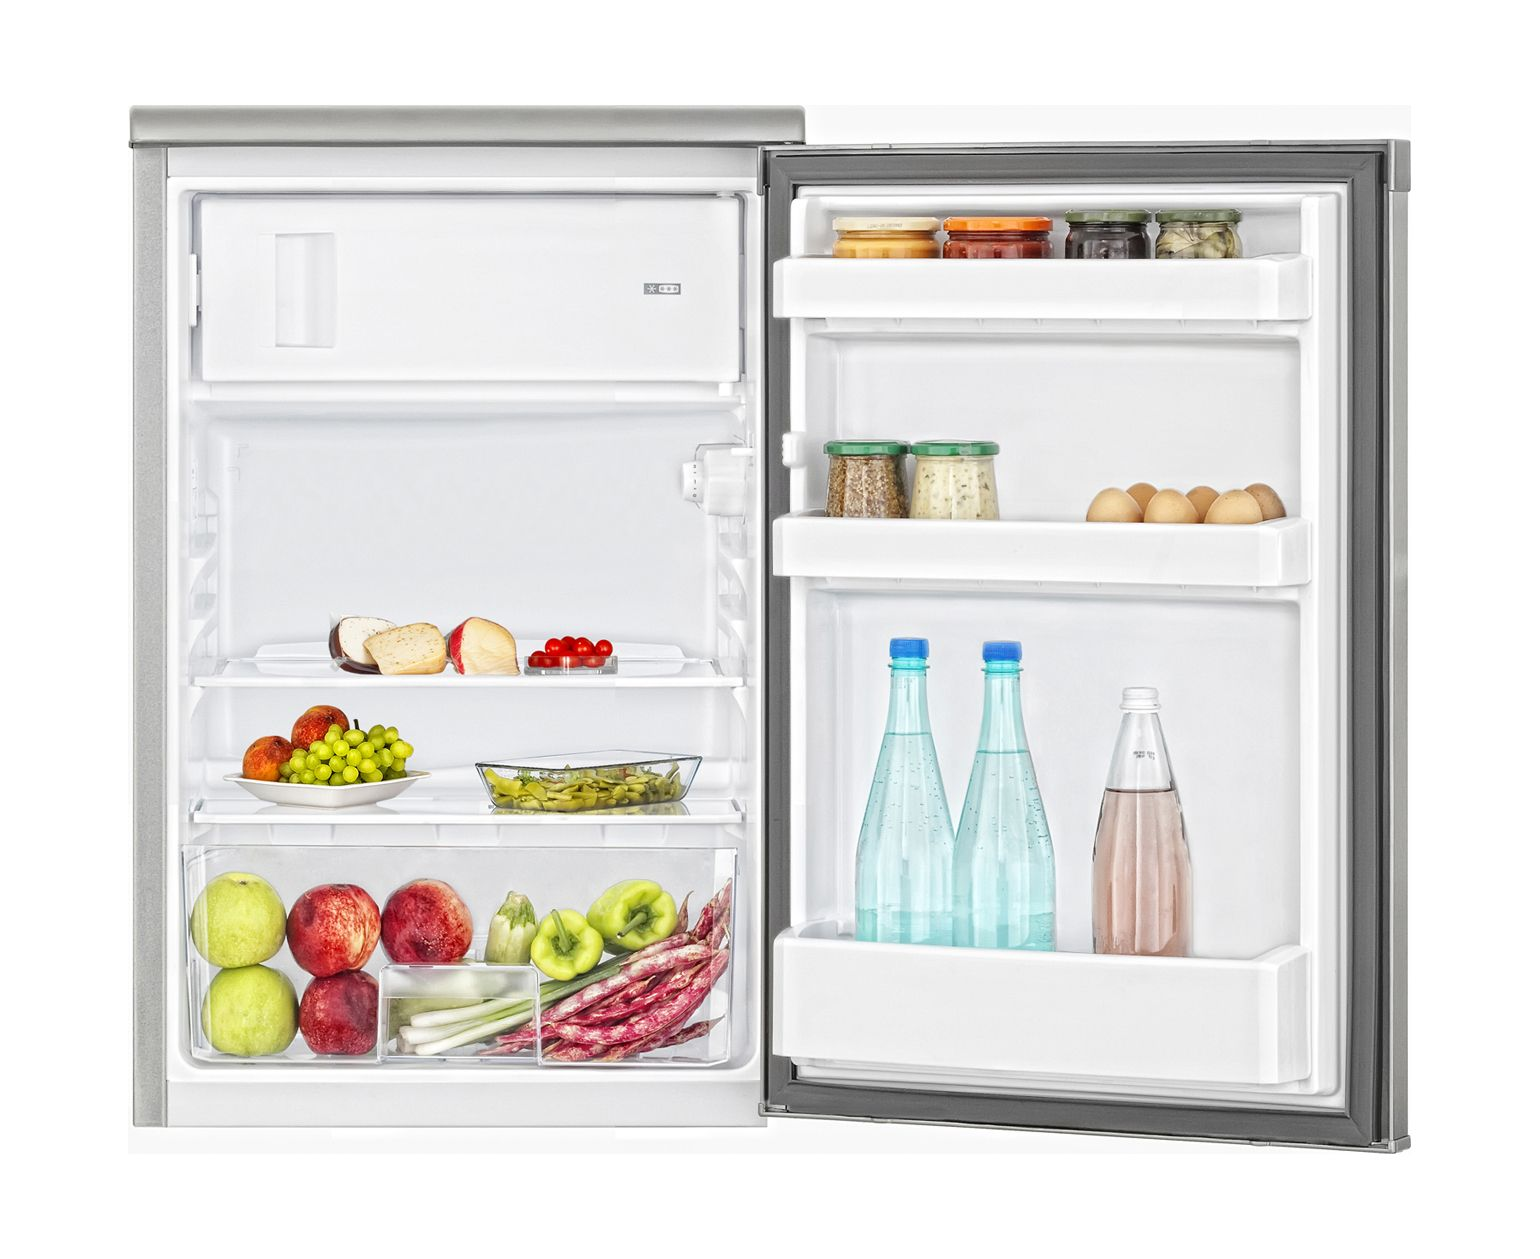 stainless refrigerator design concrete polishing kitchen white counter kahiz porch remodeling swing steel ana work table drawer home single floors